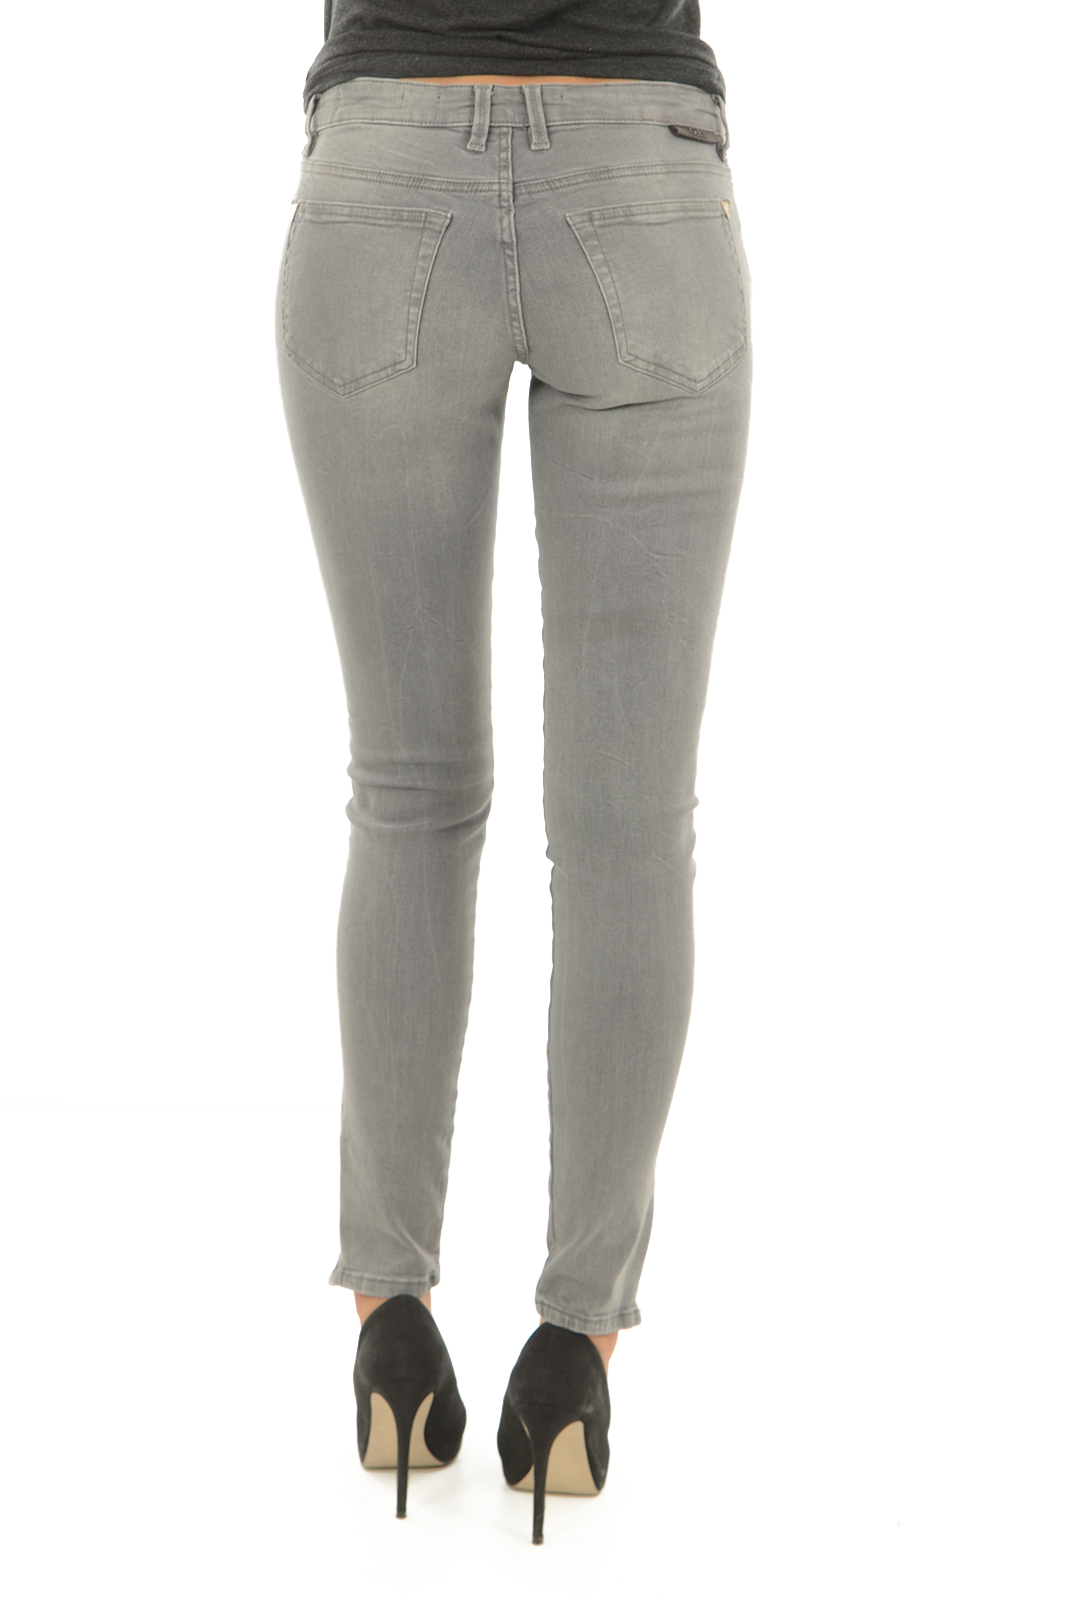 Jeans   Guess jeans W64AB8 D2CD0 MARILYN AWESOME GREY